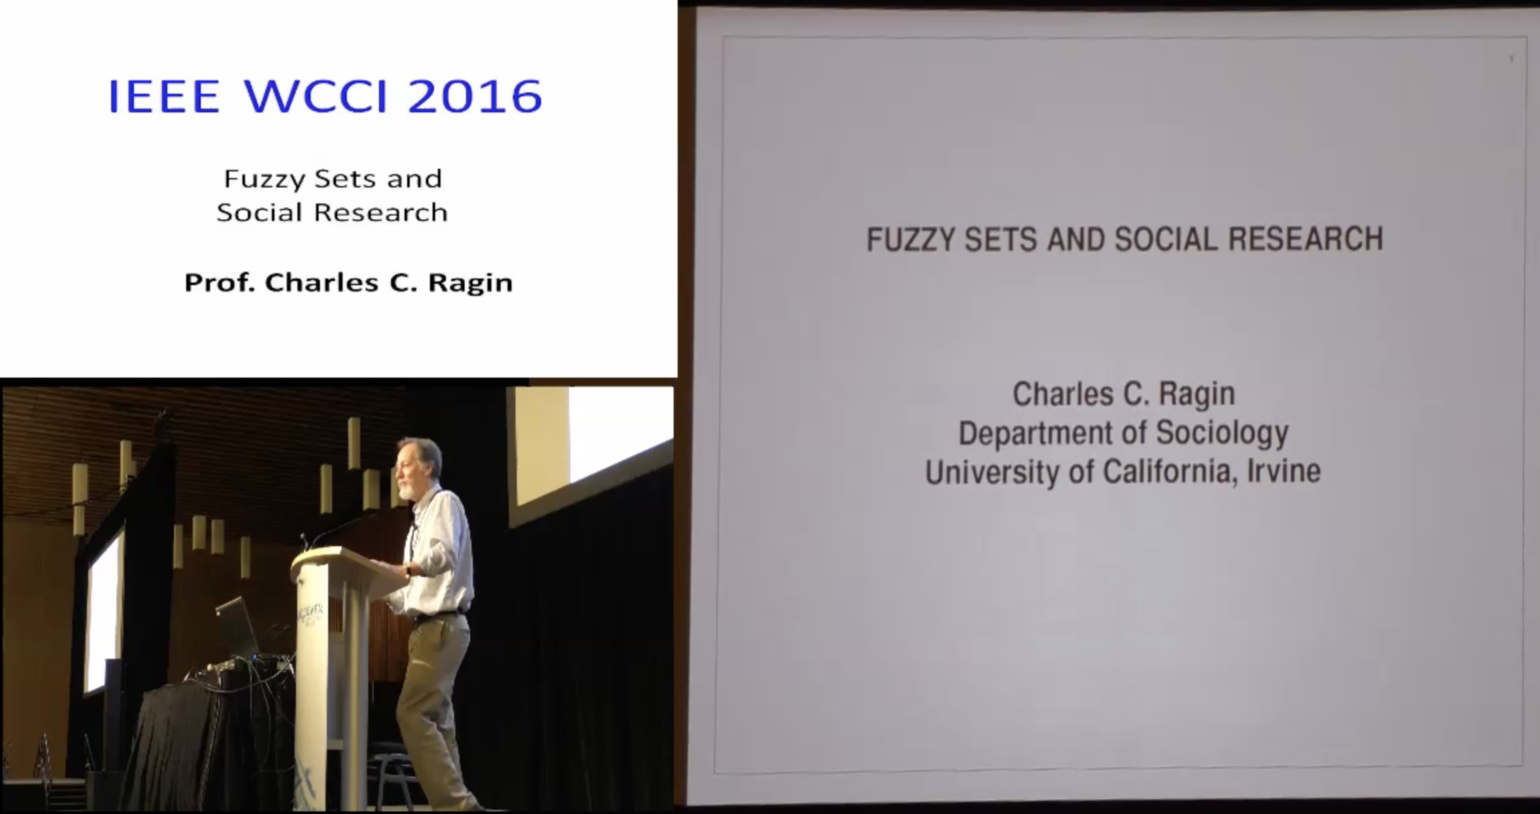 Fuzzy Sets and Social Research - Charles C. Ragin - WCCI 2016